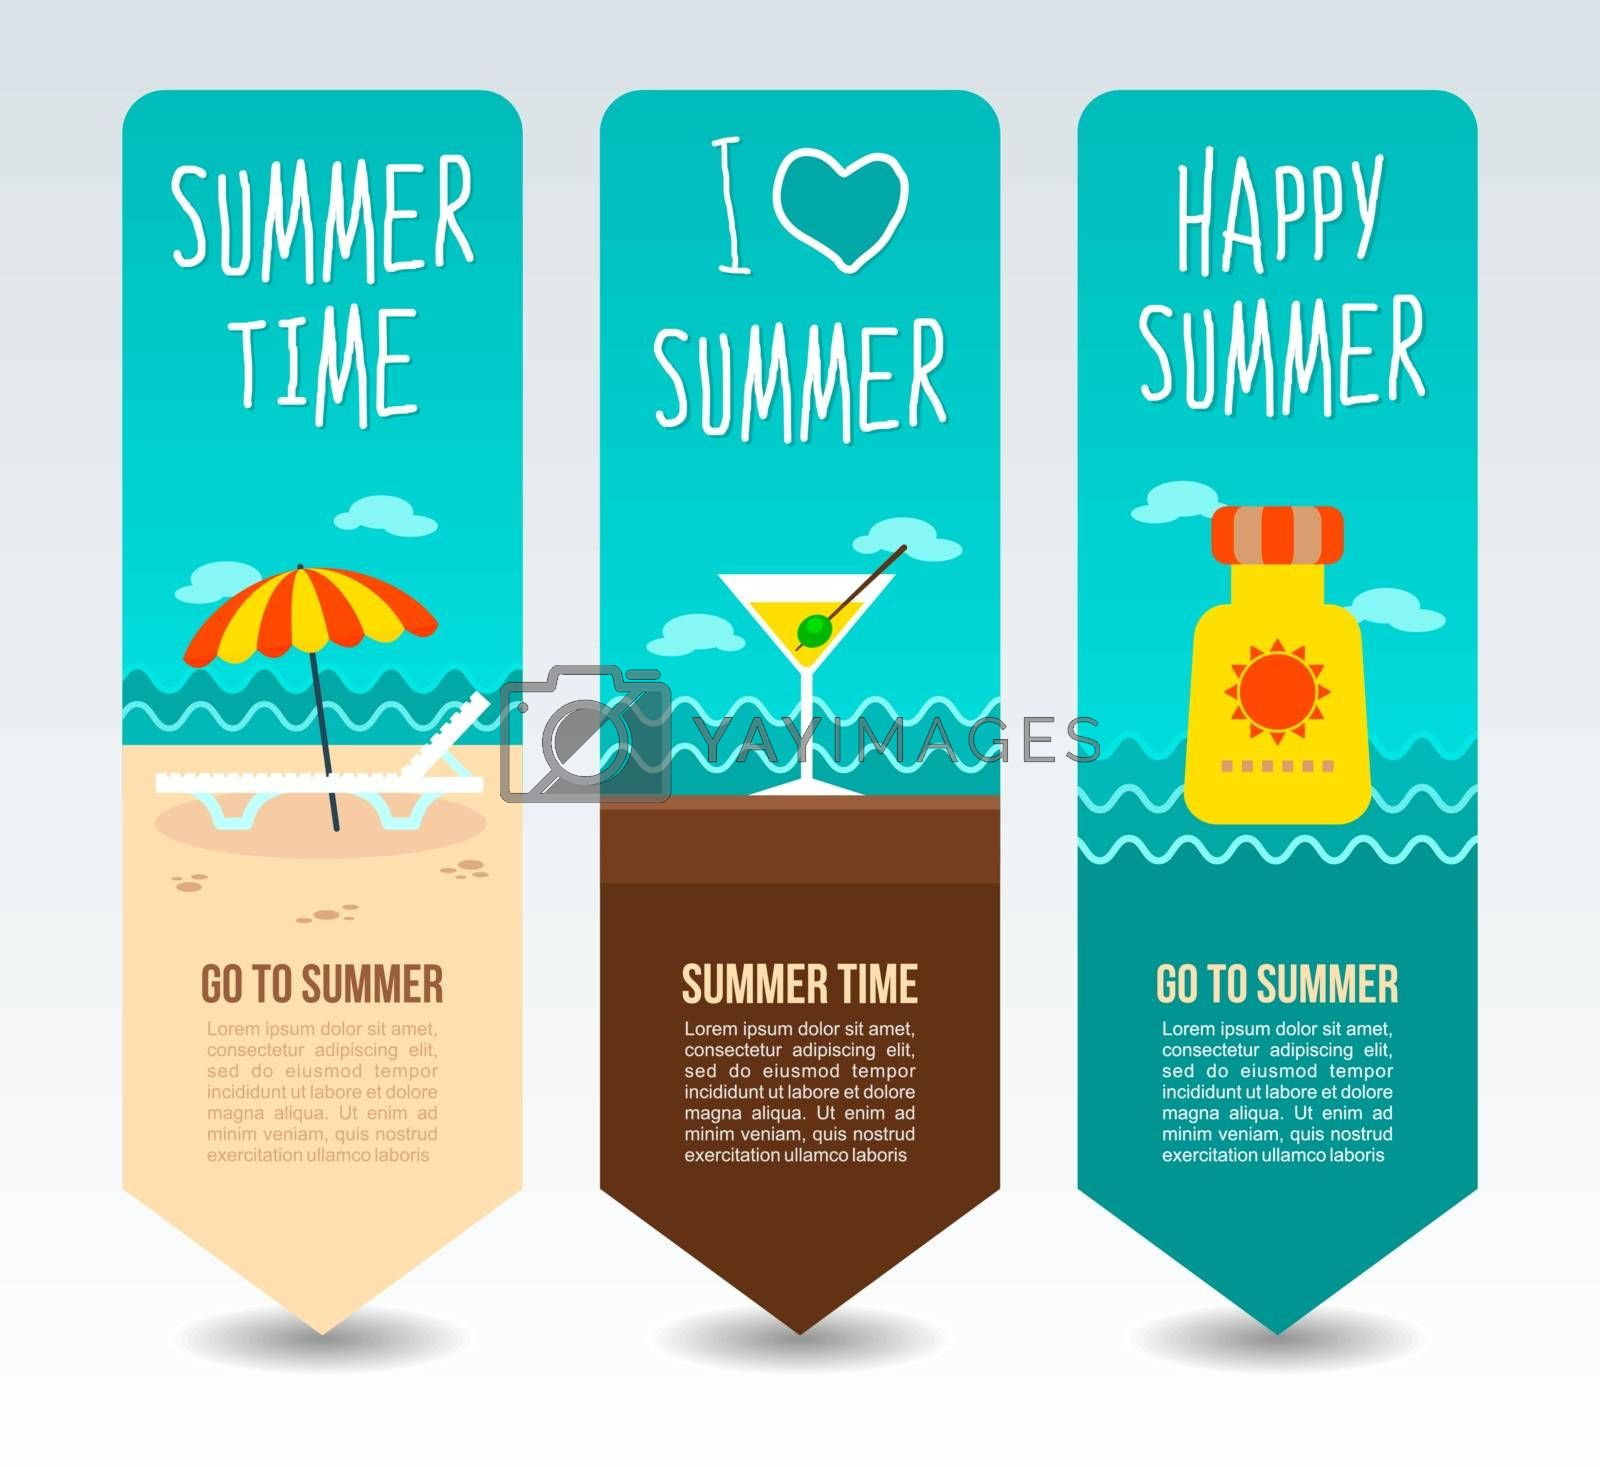 Lounge chaise and umbrella, cocktail martini and sunscreen. Summer Travel and vacation vector banners. Summertime. Holiday